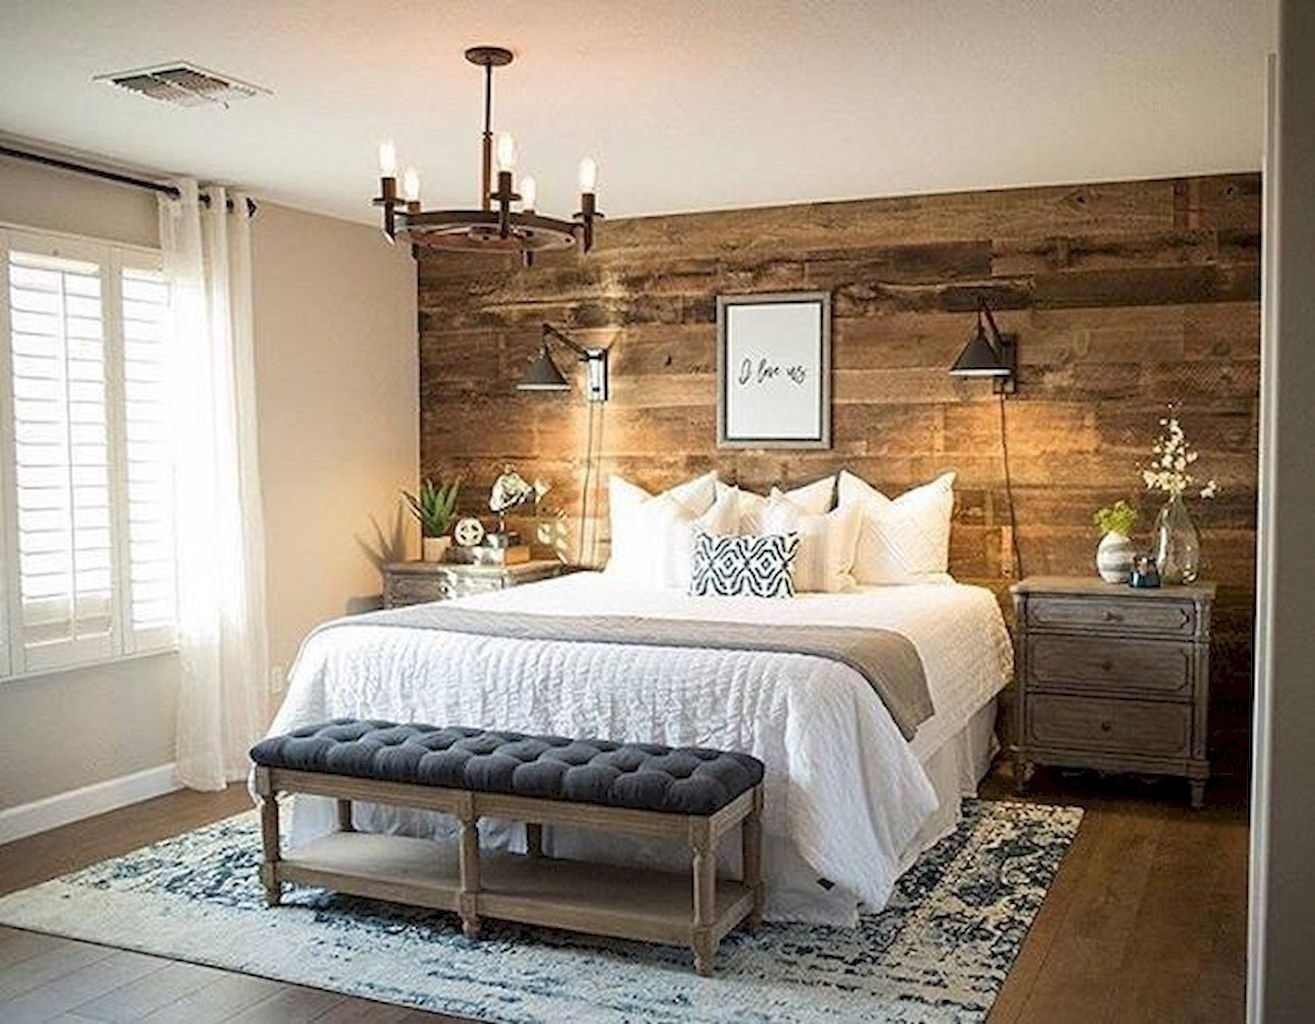 10 Amazing Master Bedroom Decorating Ideas On A Budget 50 elegant master bedroom decor ideas on a budget farmhouse in 2020